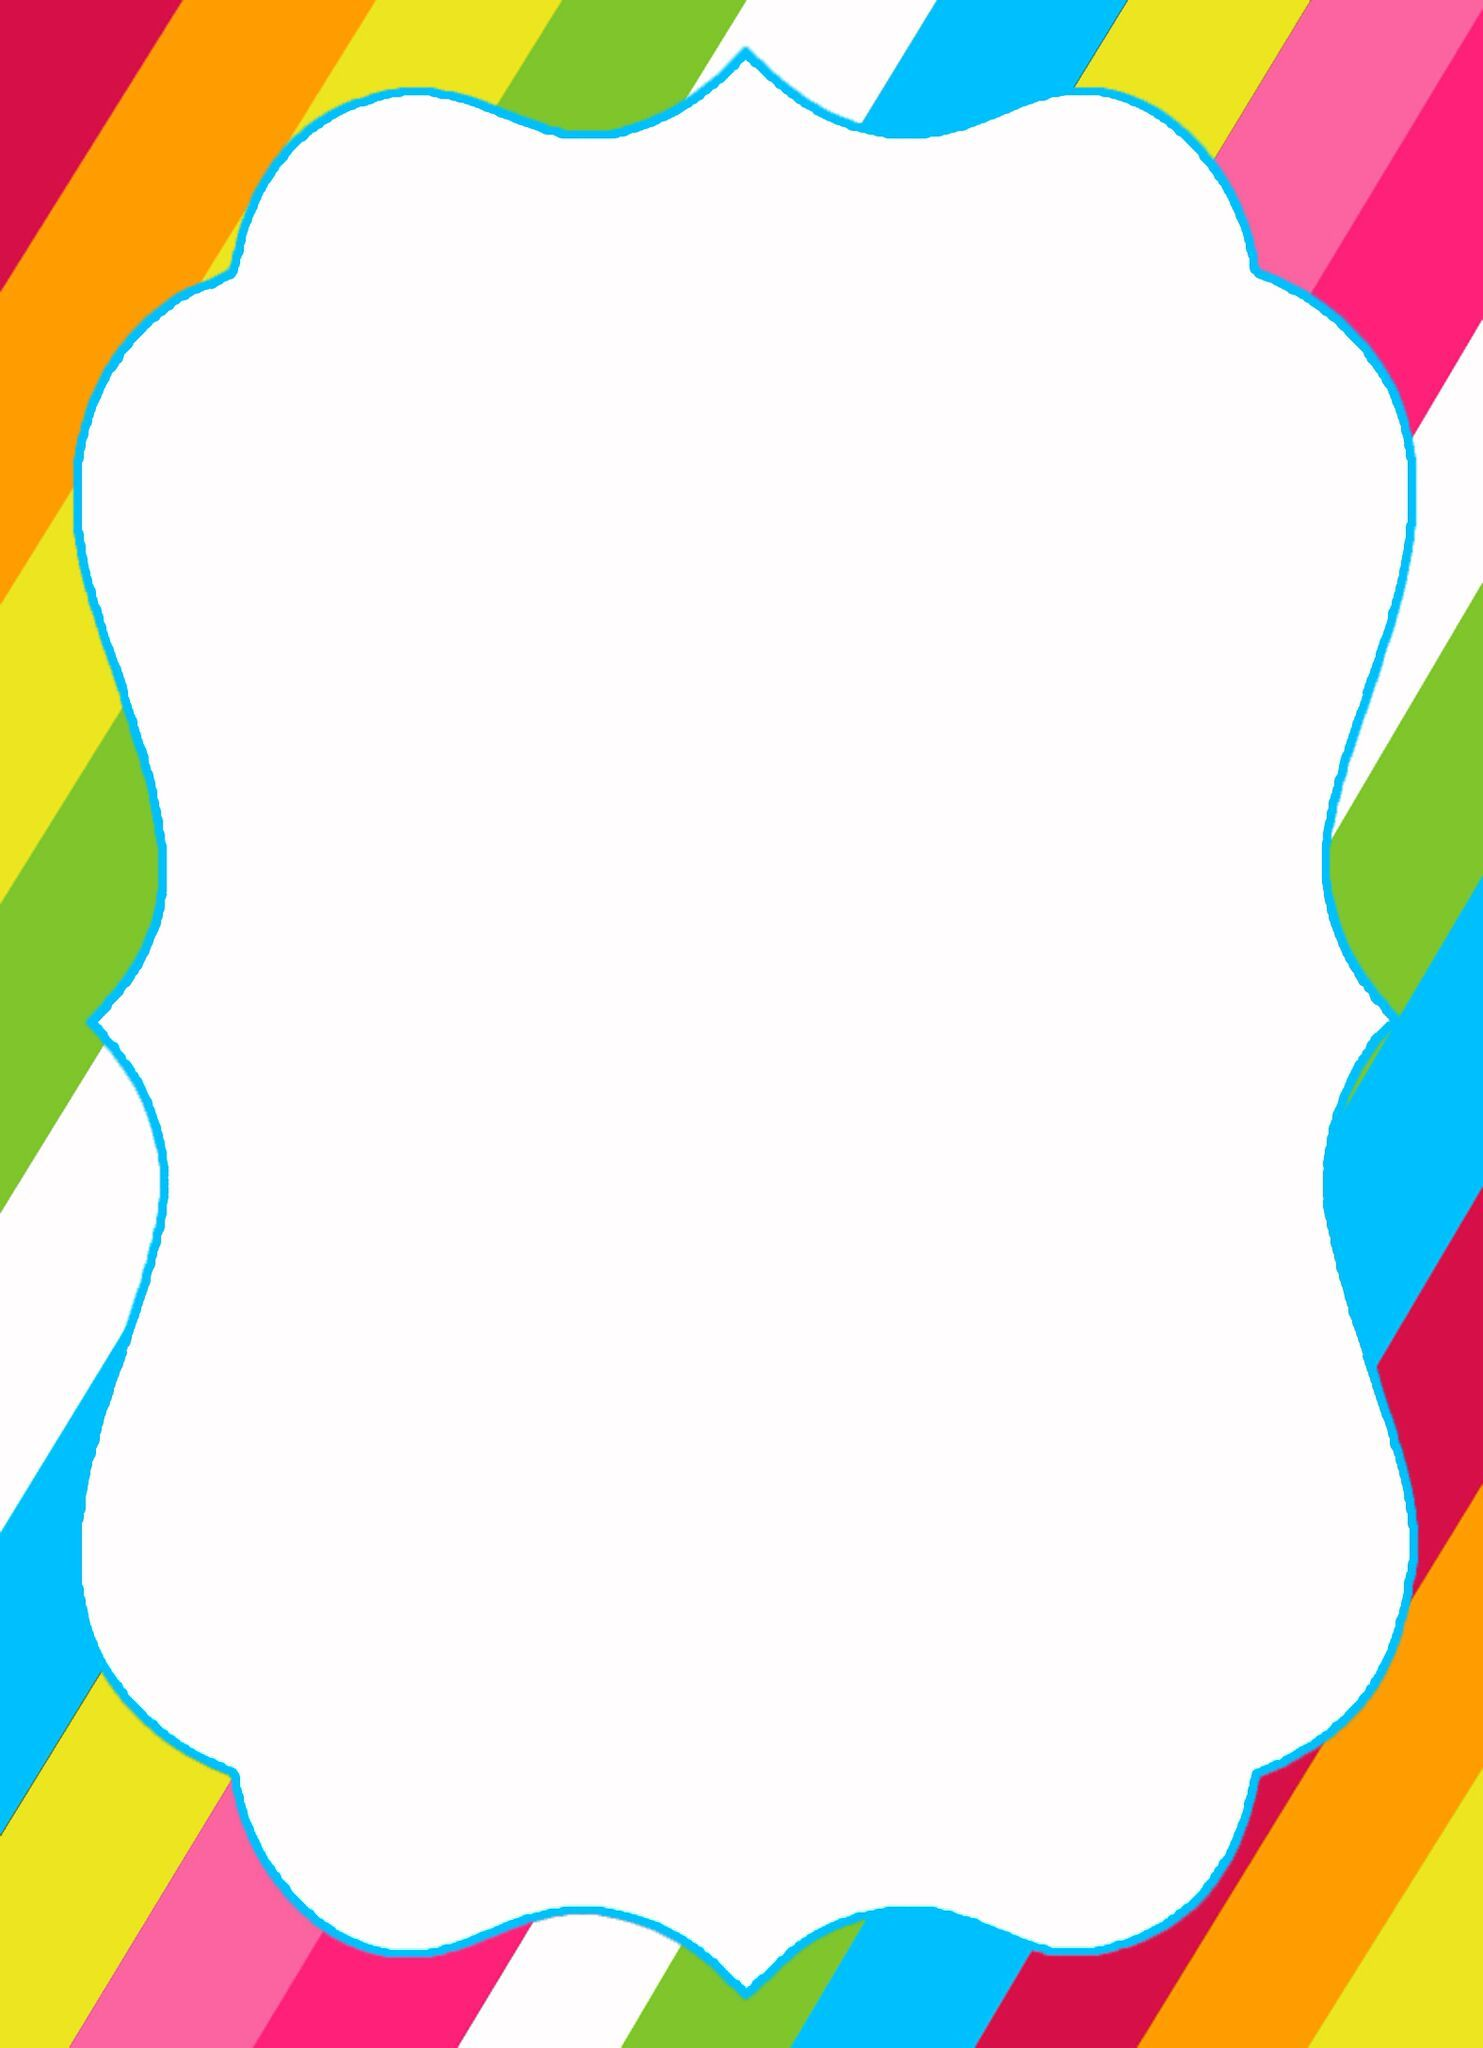 Png clip art library. Candyland clipart border